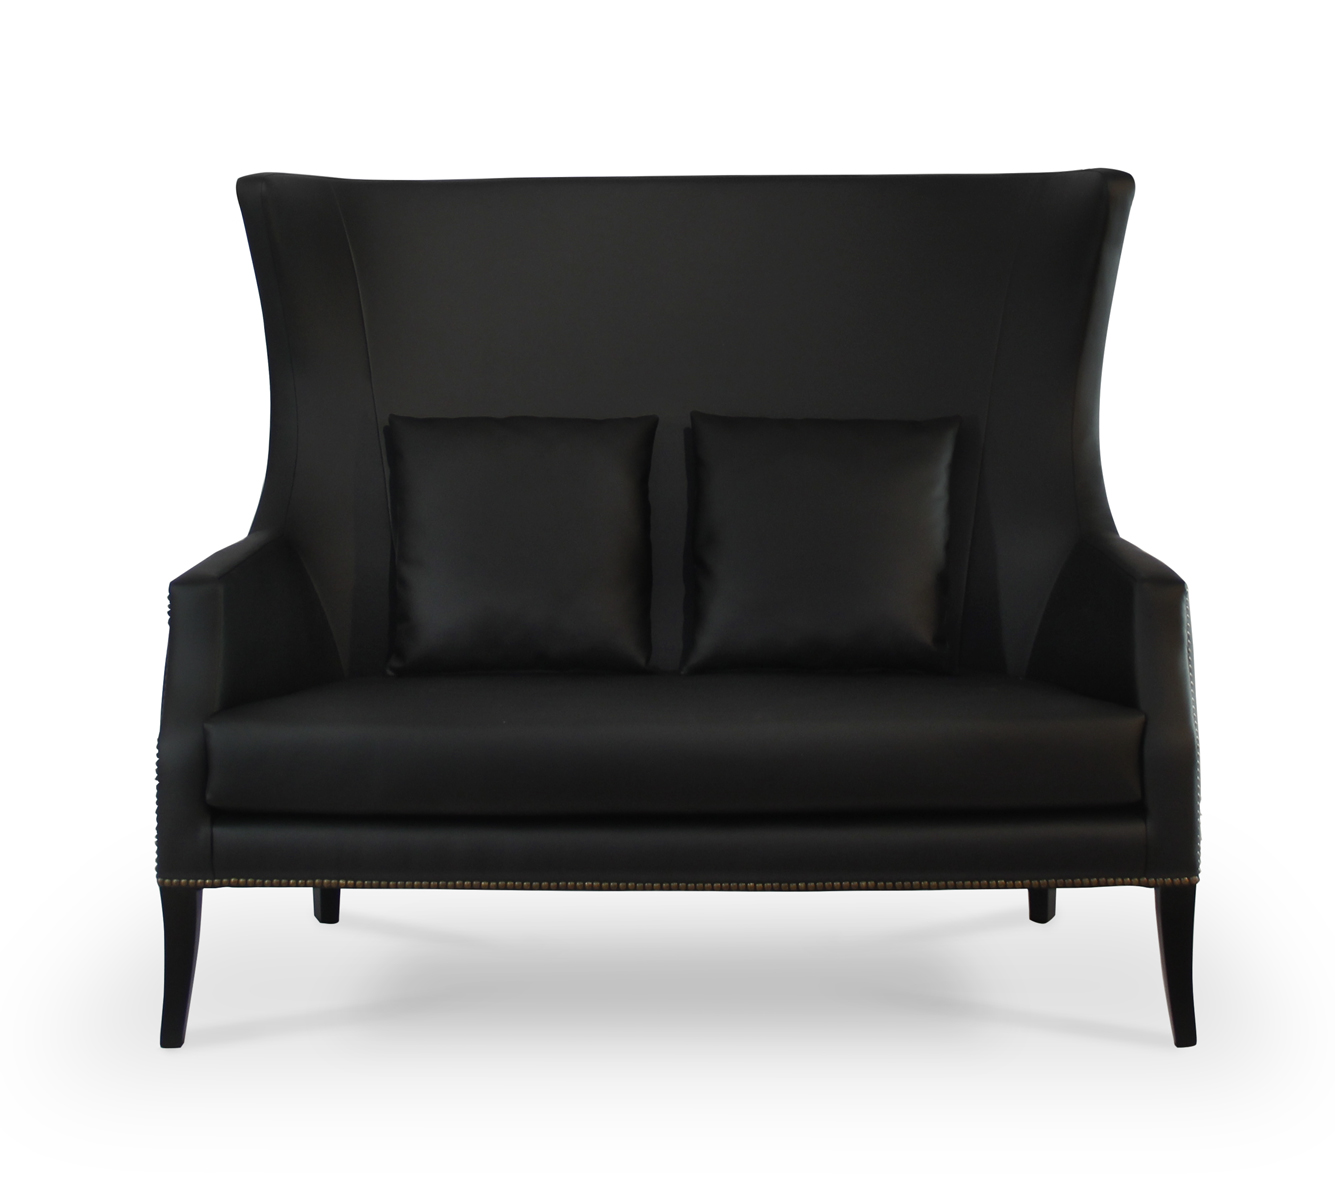 Dukono Sofa By Brabbu Demorais International